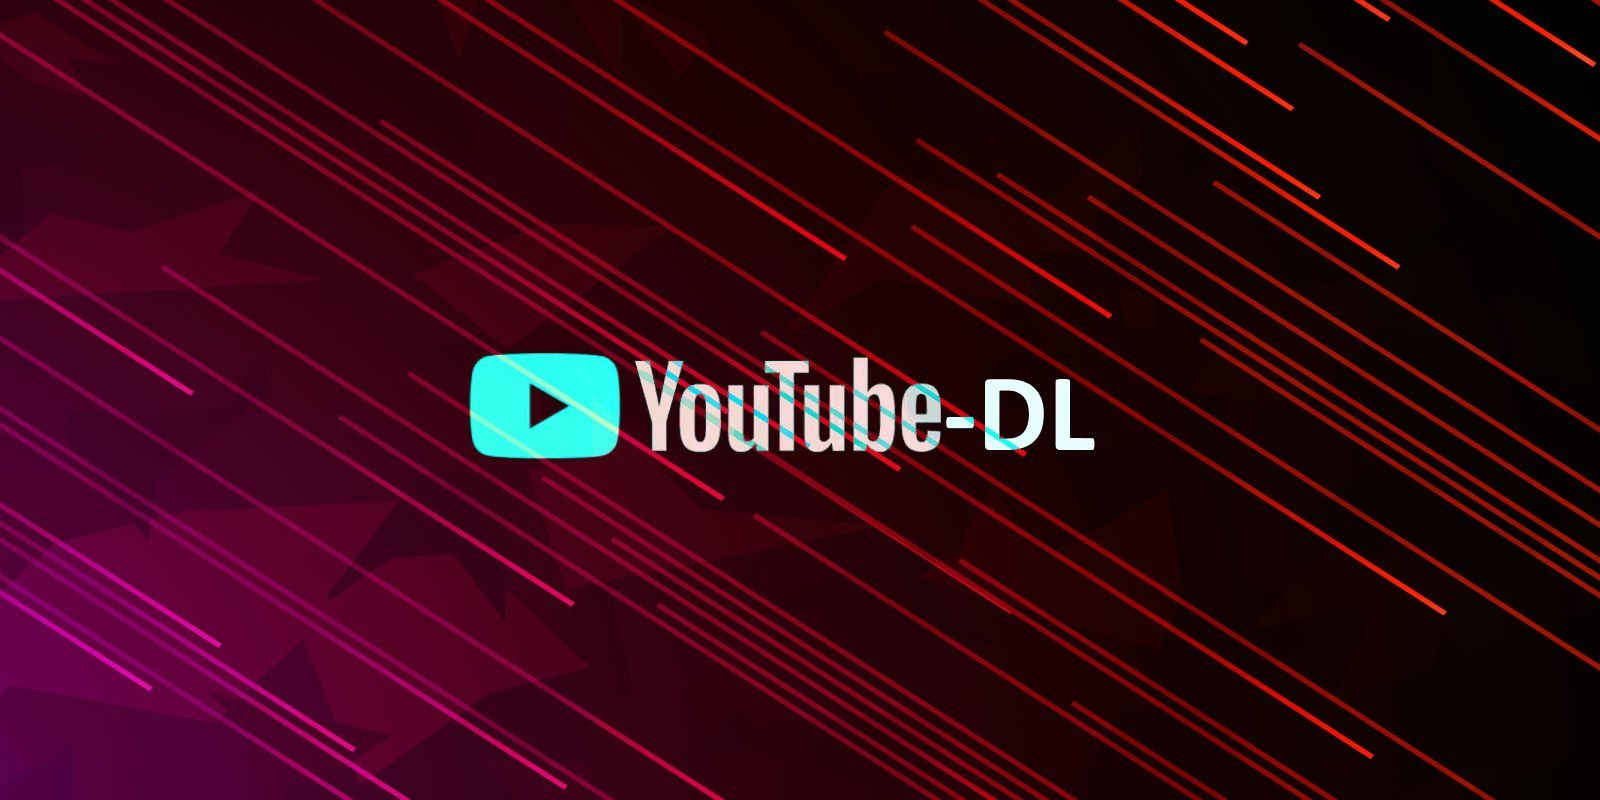 Angry YouTube-dl Users Flood GitHub With New Repos After Takedown